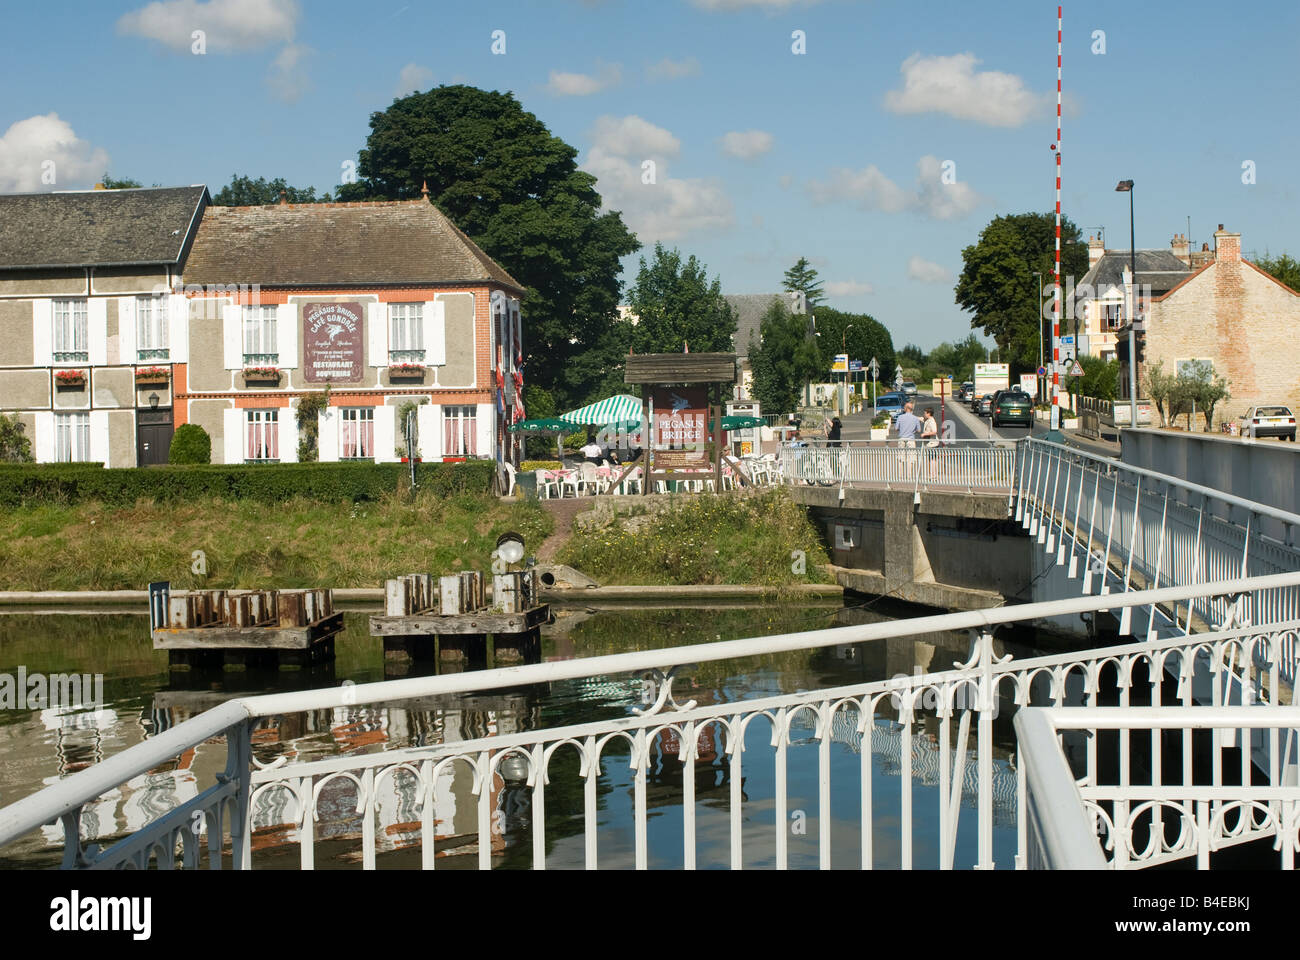 pegasus bridge over the caen canal near ouistreham france stock photo royalty free image. Black Bedroom Furniture Sets. Home Design Ideas